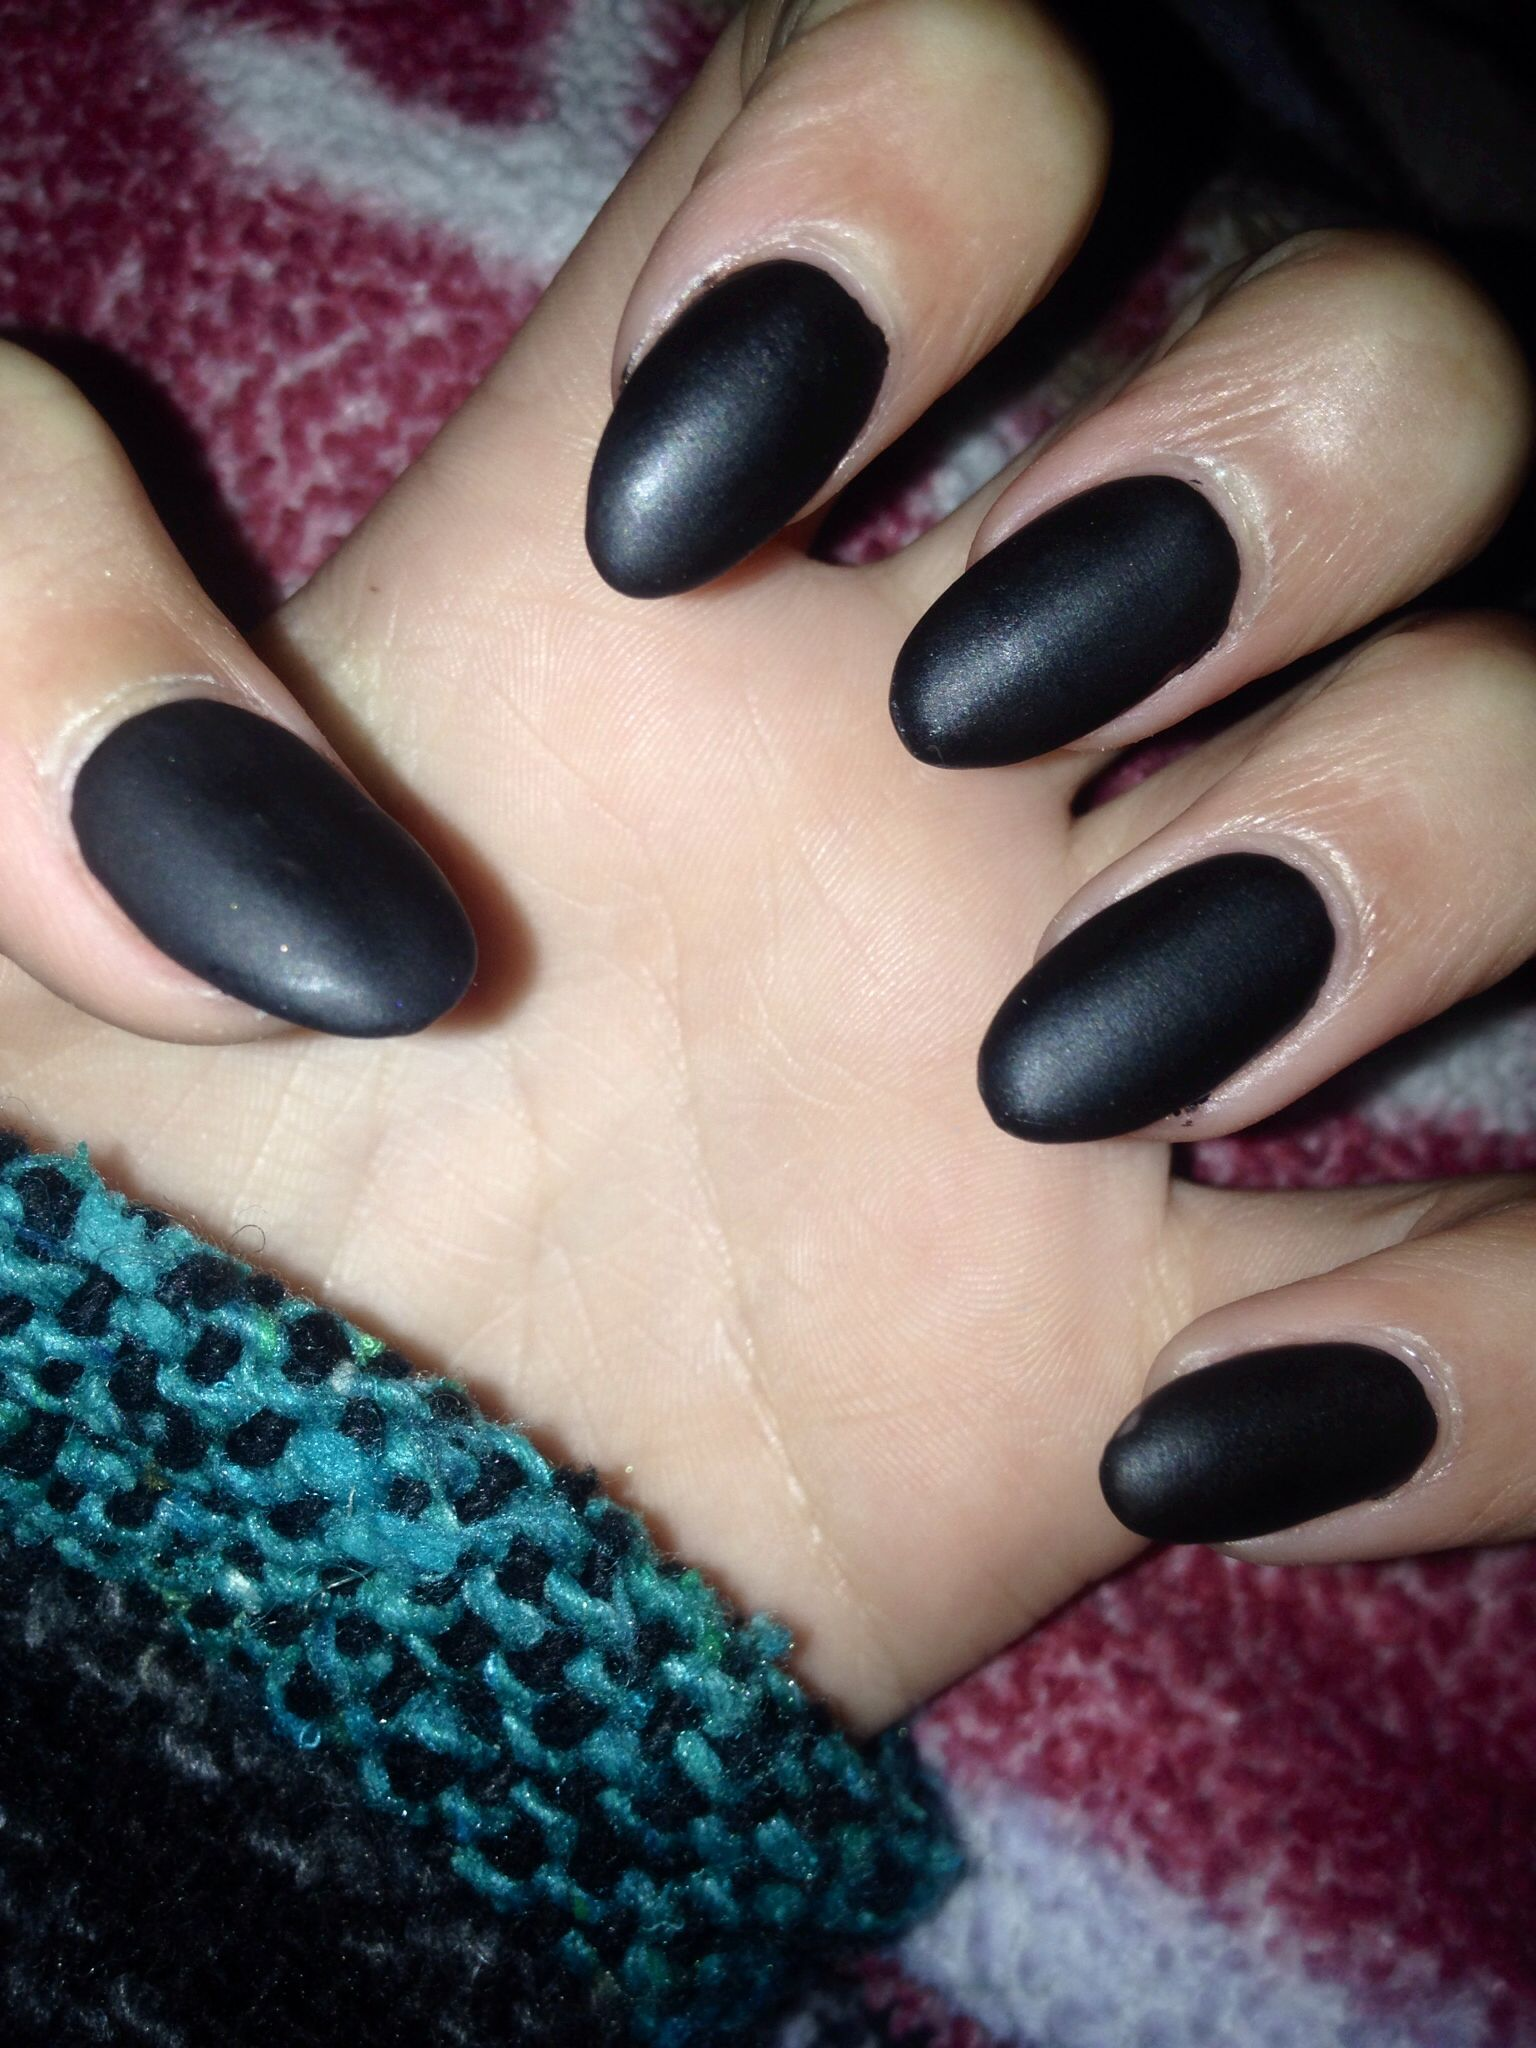 Matte black almond shape nails | Nails | Pinterest ...